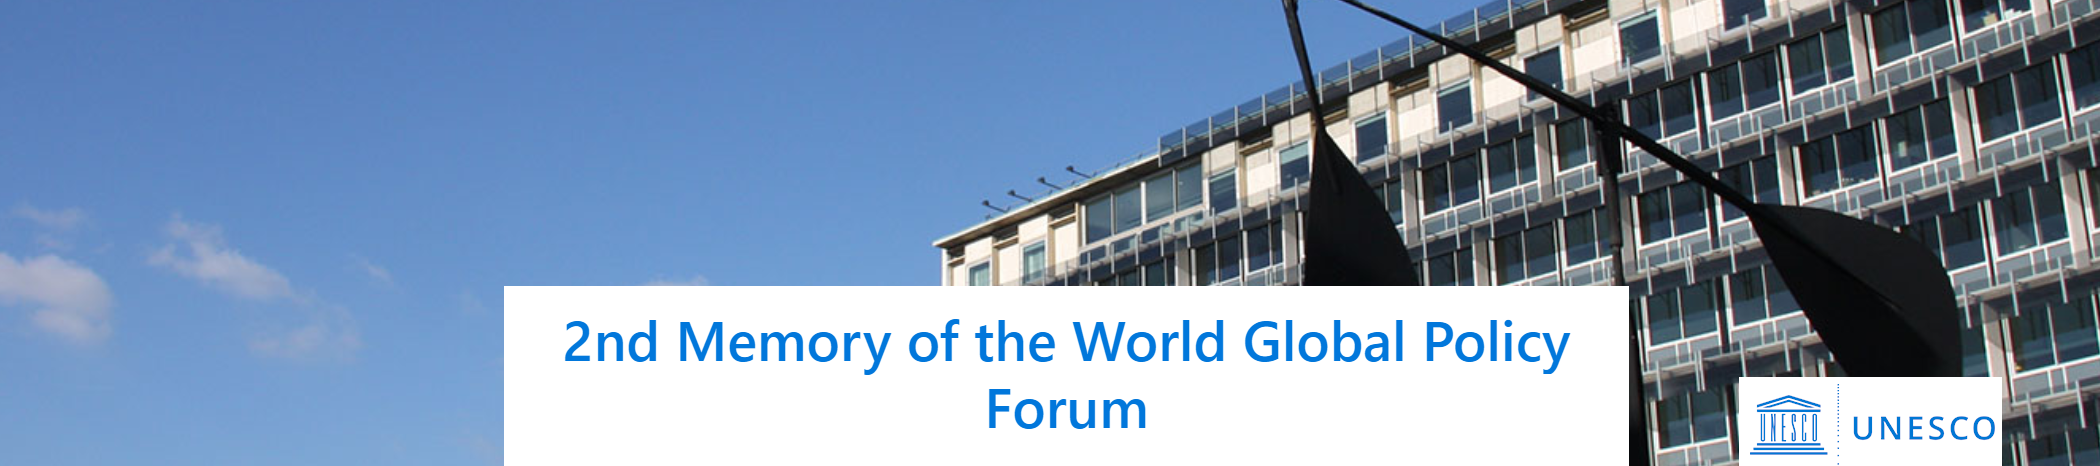 UNESCO 2nd MoW Global Policy Forum